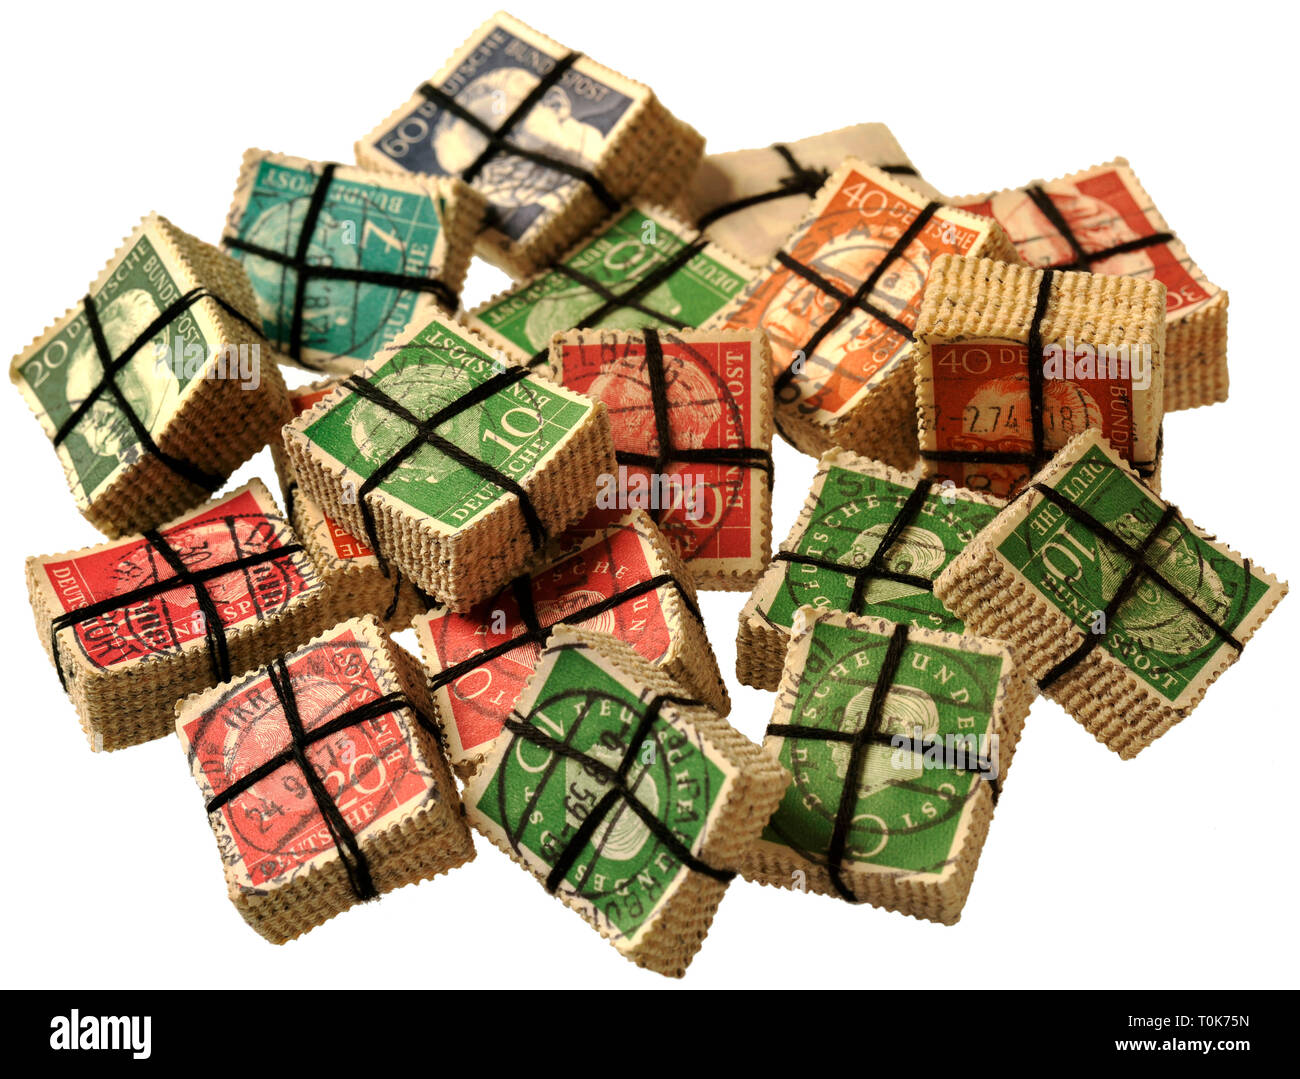 mail, postage stamps, Germany, 1954, 1959, 1973, postage stamps, Theodor Heuss, 1884 until 1963, Federal President 1949 until 1959, period postage stamp, Gustav Heinemann, 1899 until 1976, Federal President, 1969 until 1974, Additional-Rights-Clearance-Info-Not-Available - Stock Image